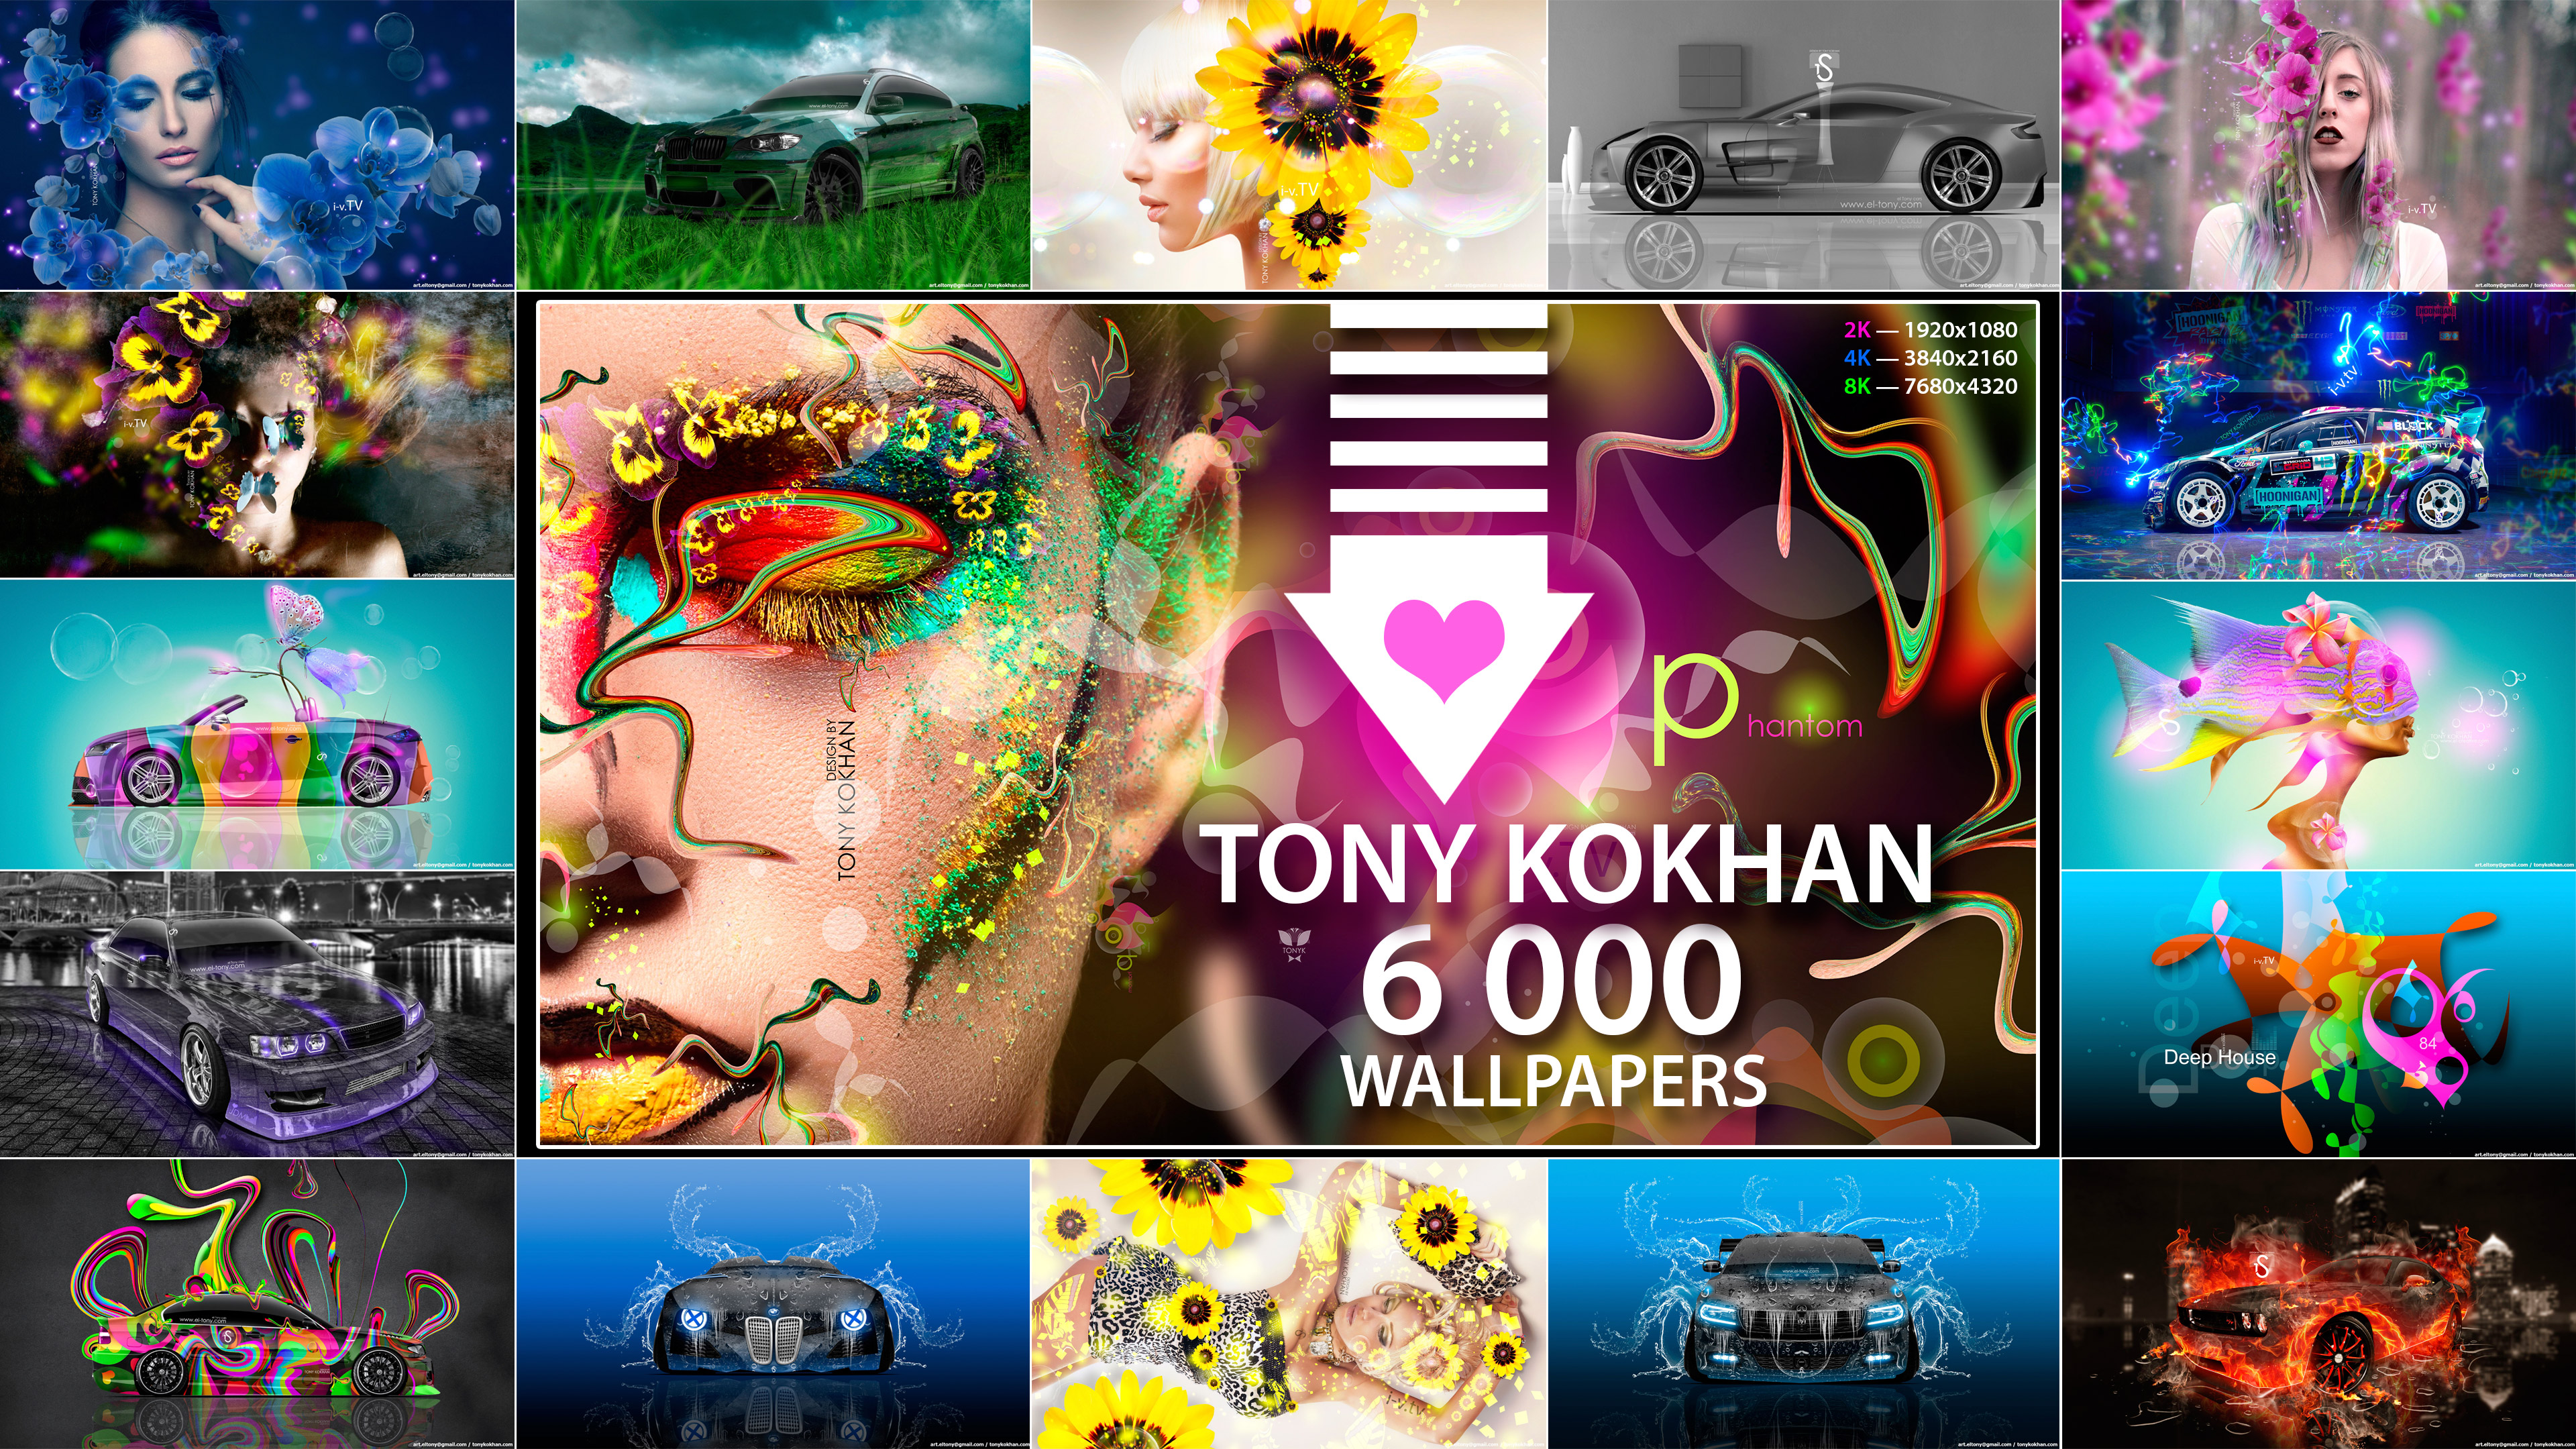 6000-WALLPAPERS-2K-4K-8K-DESIGN-BY-TONY-KOKHAN-2020-FULL-PACK-DOWNLOAD-Cover-www.el-tony.com-image